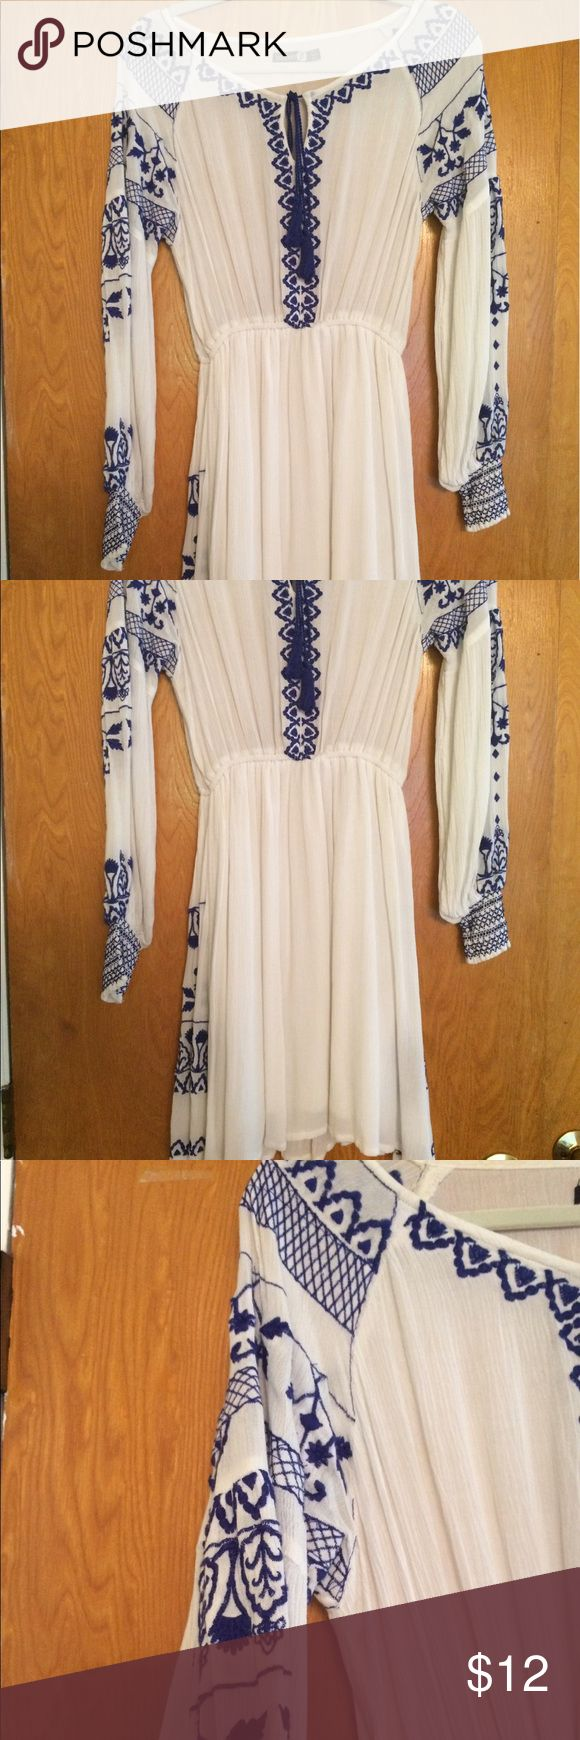 Blue and white embroidered sundress/cover up This pretty summer dress is perfect to go out in or even as a beach cover up. The top is sheer so you either need to wear a nude bra or a came underneath: the bottom half is lined. Beautiful embroidered lines both sides of the dress and down both sleeeves. It has a cute tie at the top. Brand: boohoo. I wore it once and then stashed it in my closet. Boohoo Dresses Mini